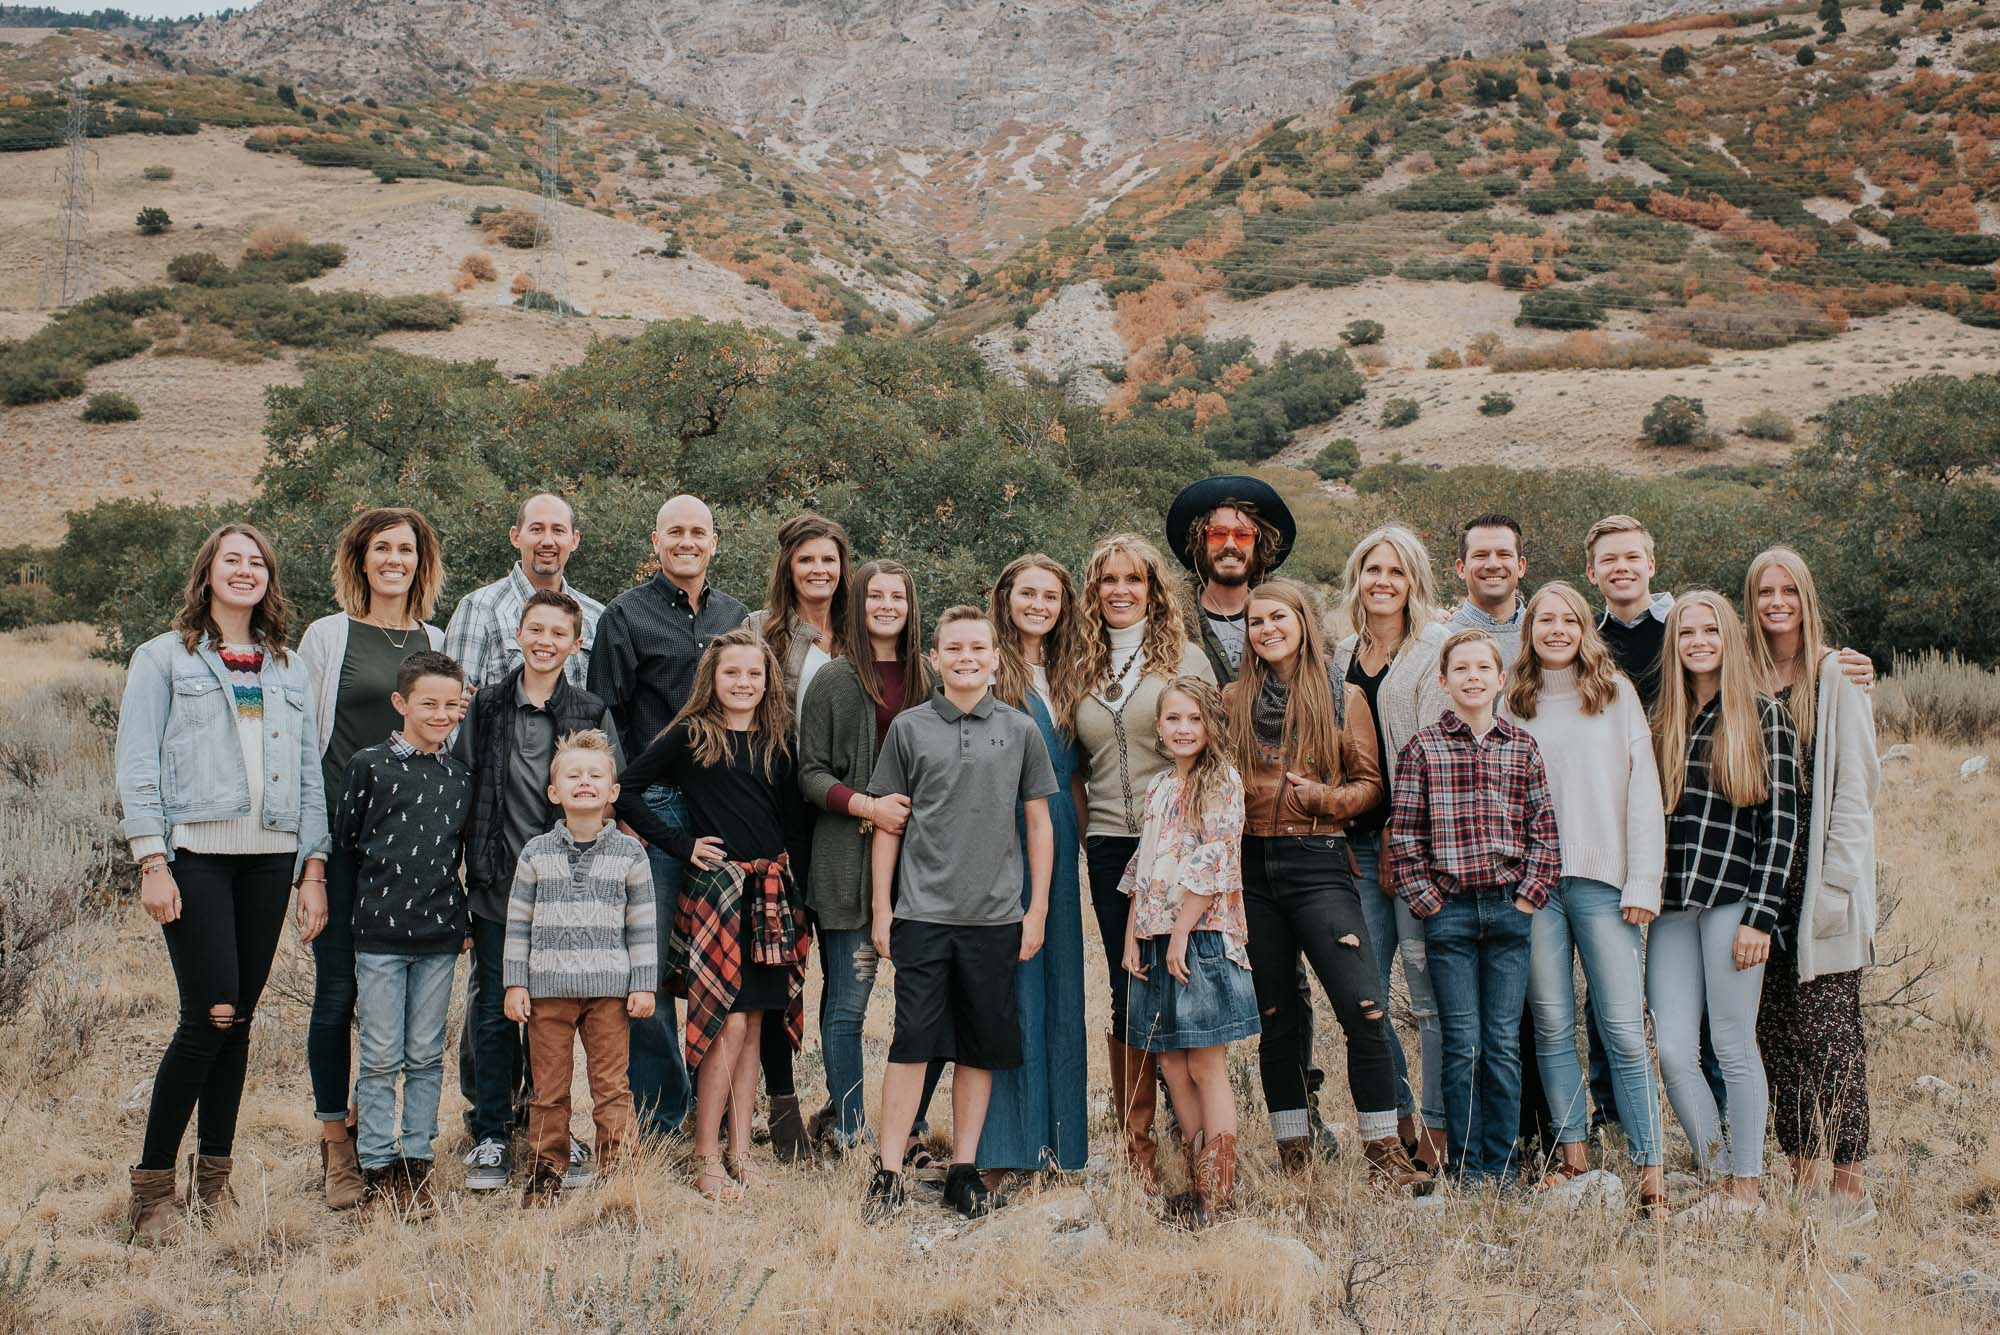 extended_family_pictures_cfairchildphotography.jpg